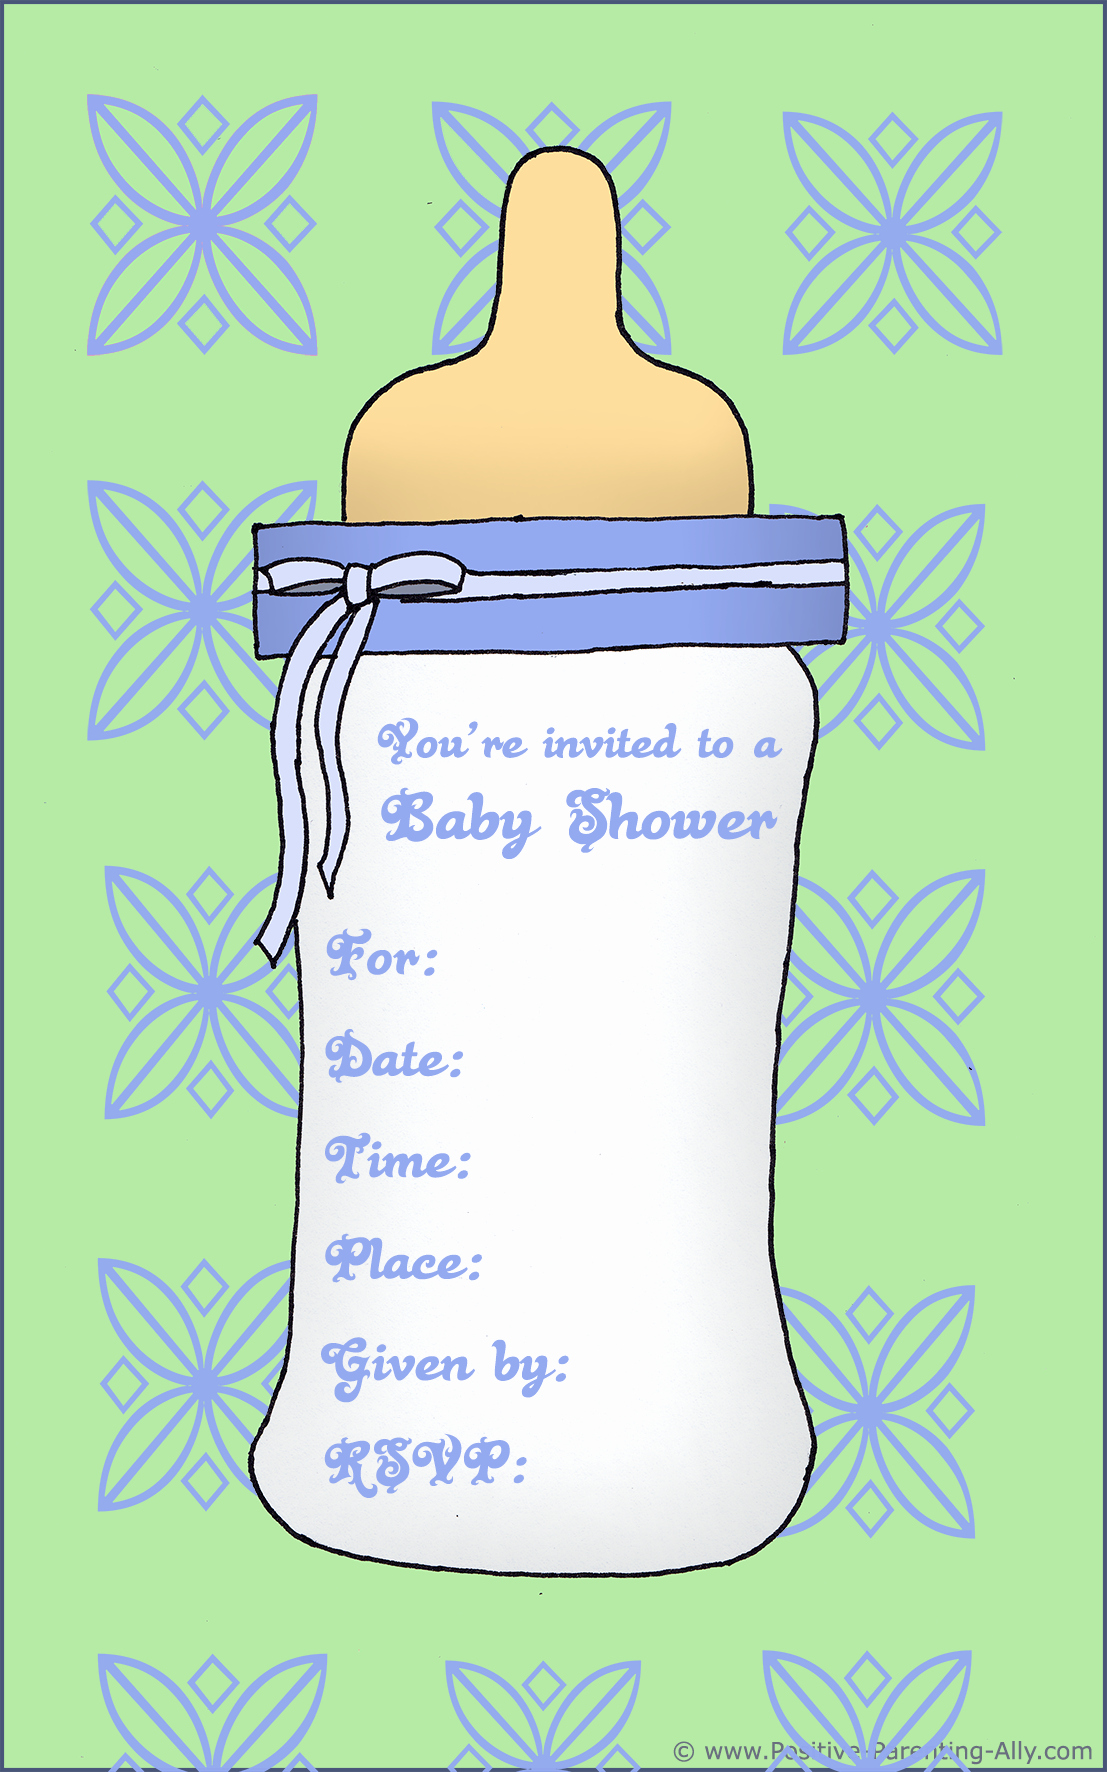 Baby Shower Invitation Template Free Best Of Free Printable Baby Shower Invitations In High Quality